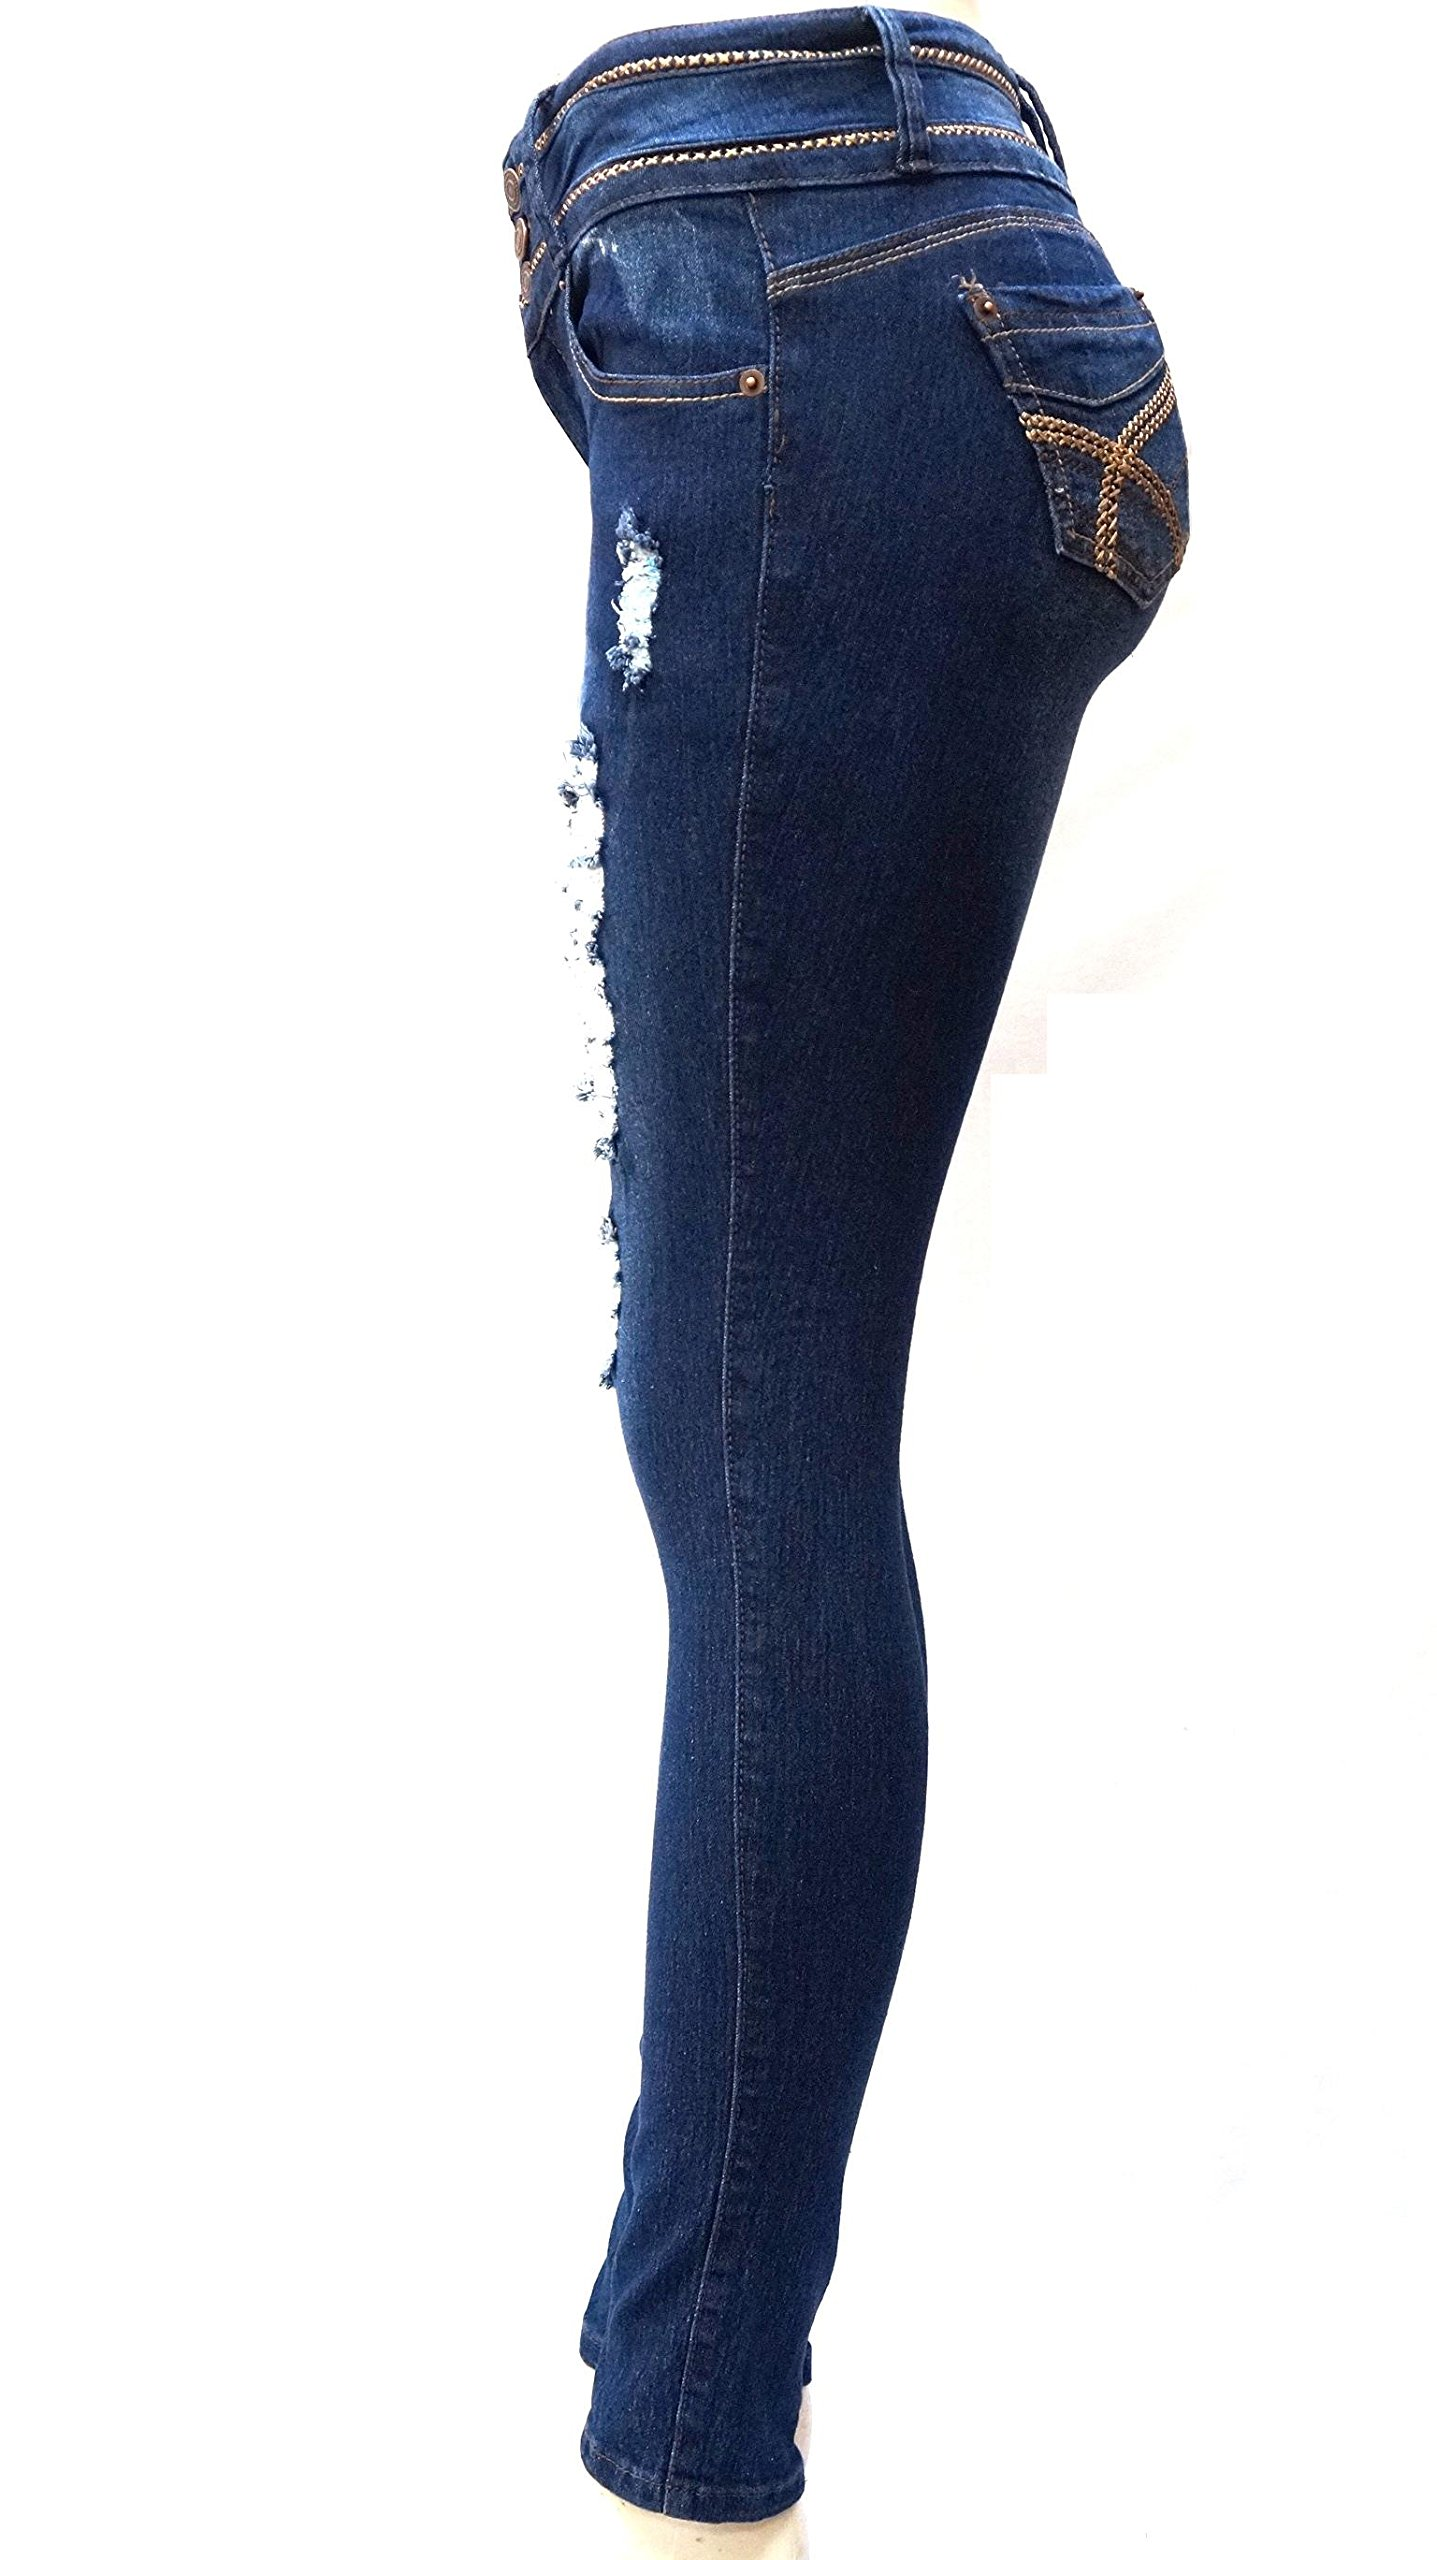 DM 1826 Juniors Womens Blue Denim Jeans Destroy Skinny Ripped Distressed Pants (1) by JEANS FOR LOVE (Image #3)